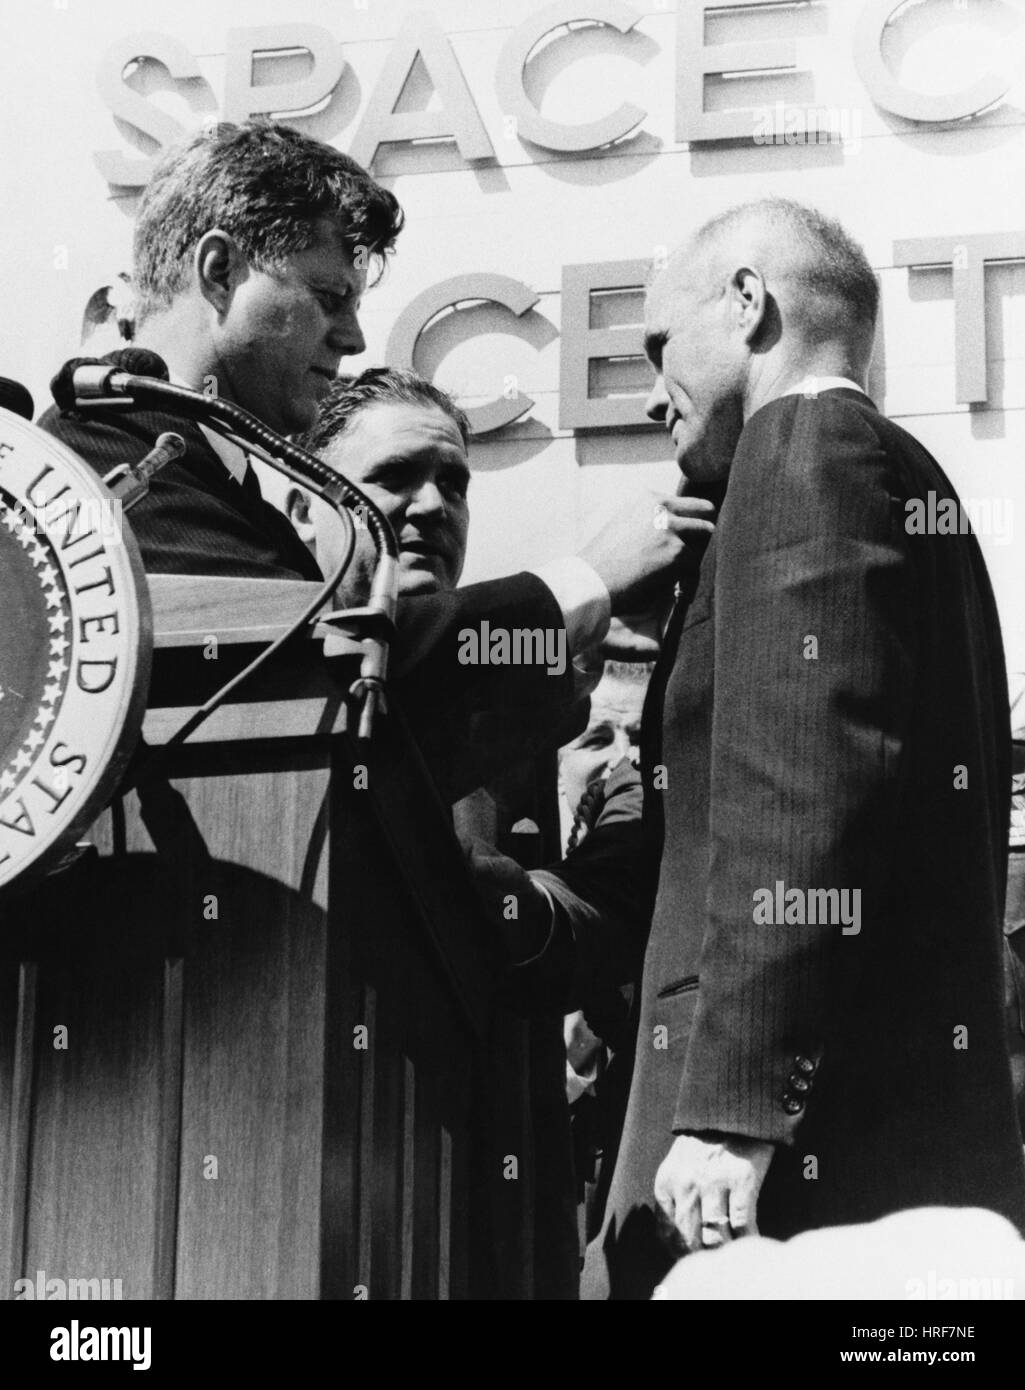 Kennedy Pins Medal on Astronaut John Glenn - Stock Image